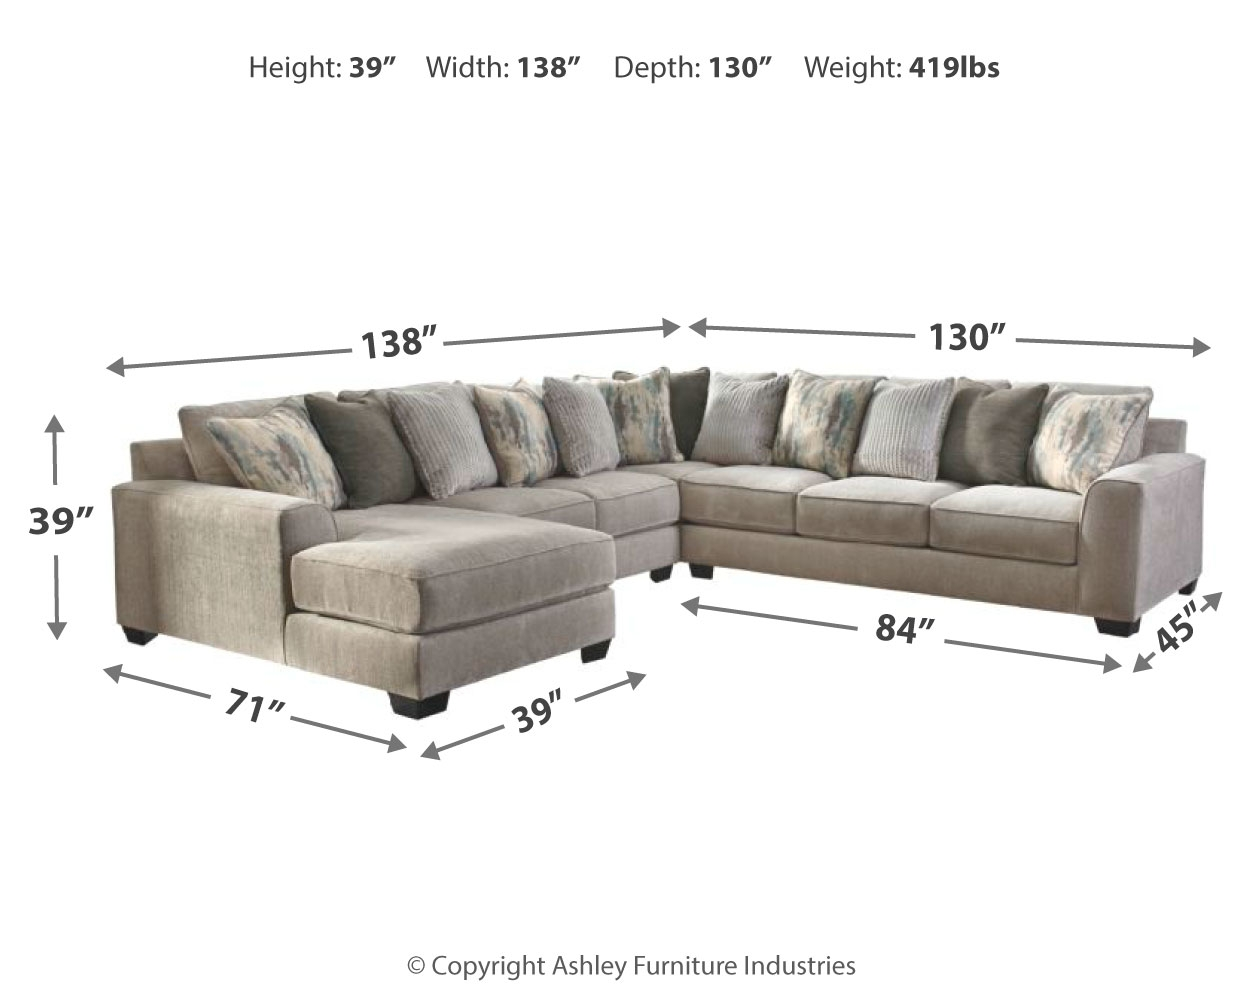 Ardsley 4 Piece Sectional With Chaise By Benchcraft 39504s1 Pierce Furniture Mattress